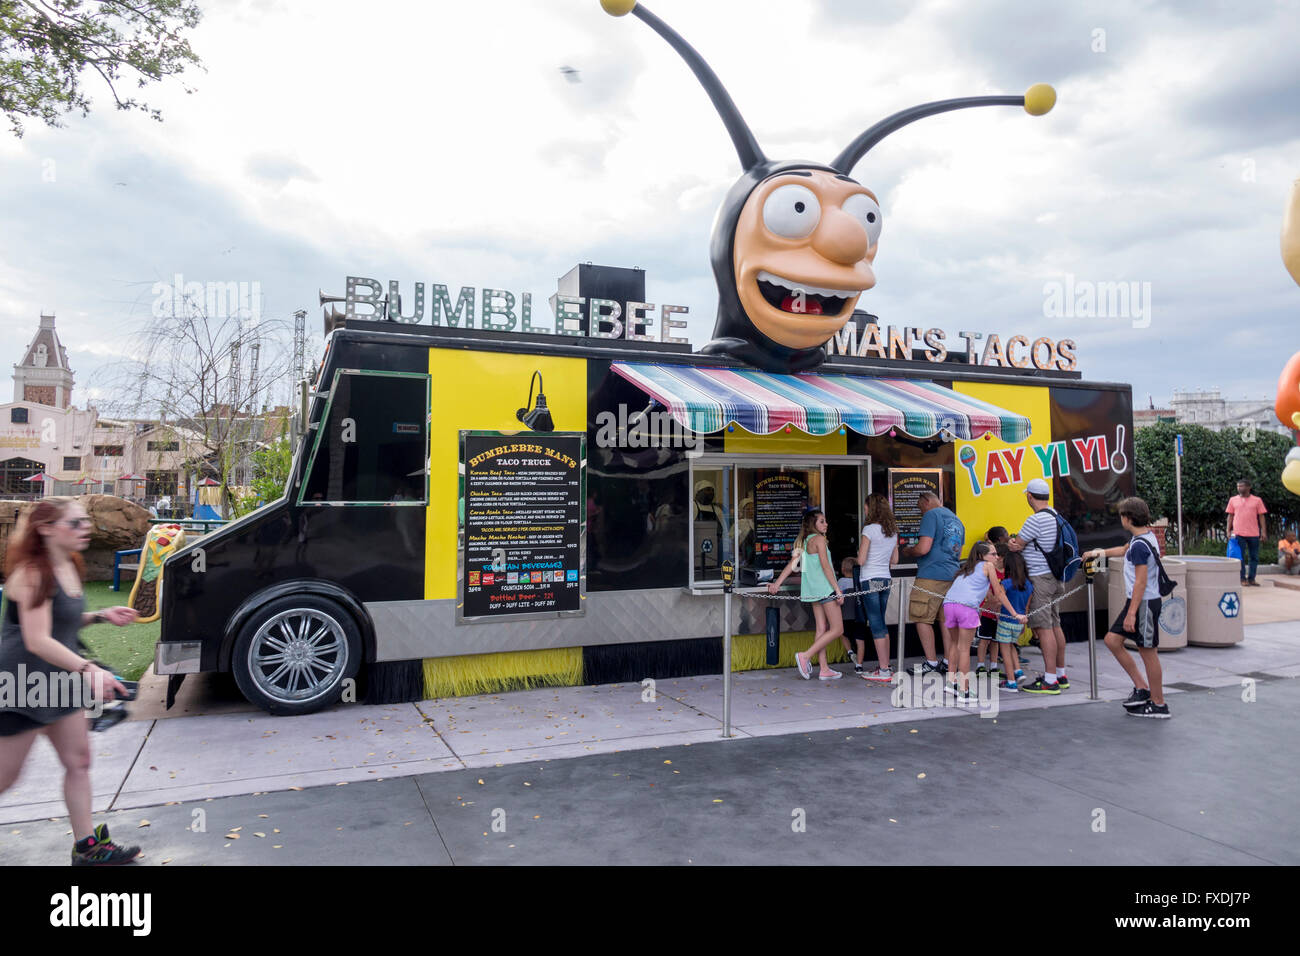 bumblebees-taco-truck-a-character-from-the-simpsons-cartoon-tv-show-FXDJ7P.jpg